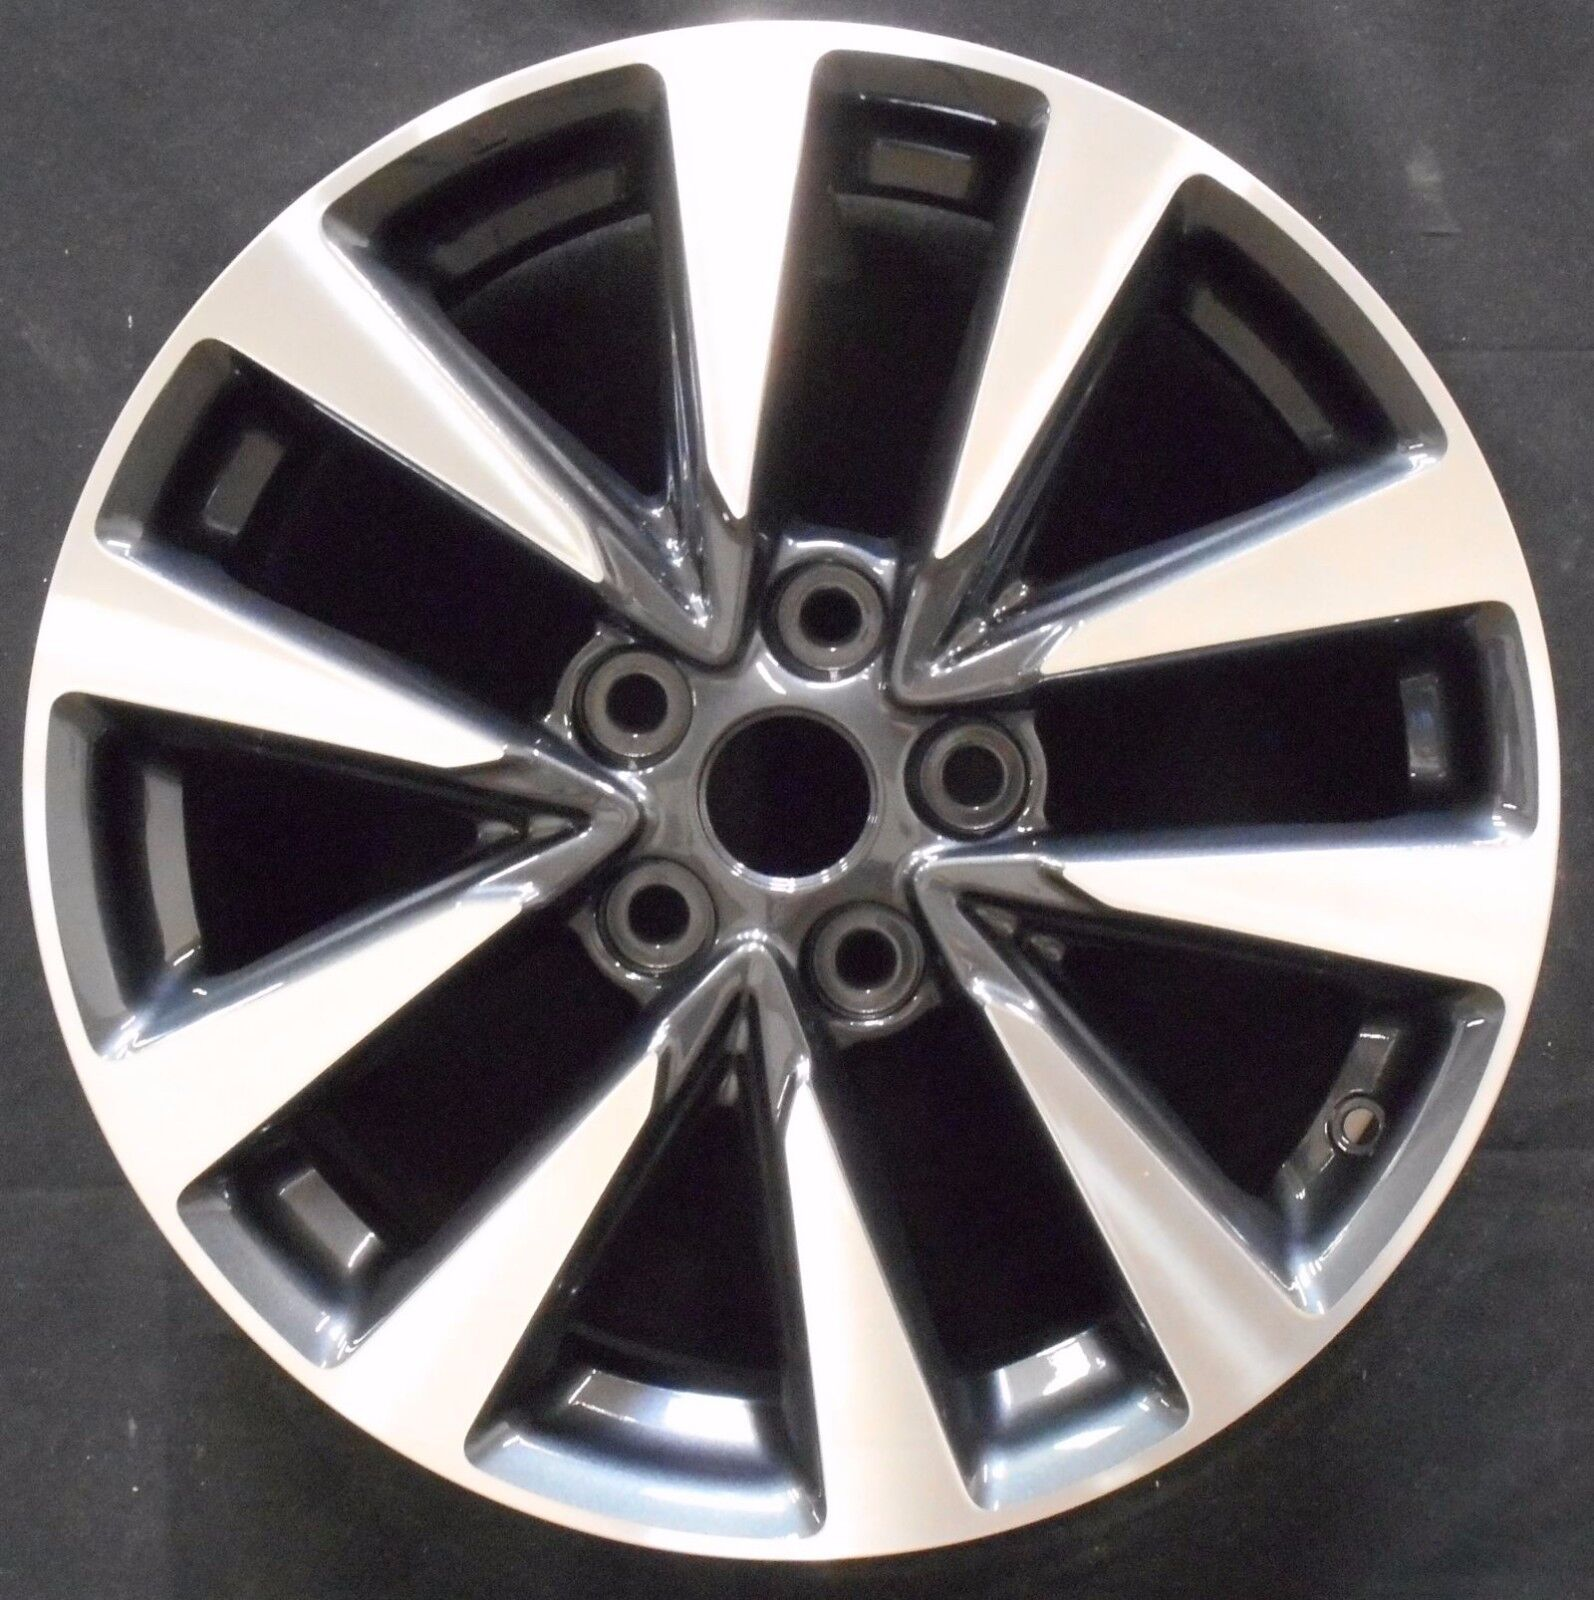 Used 2010 Nissan Altima Wheels for Sale